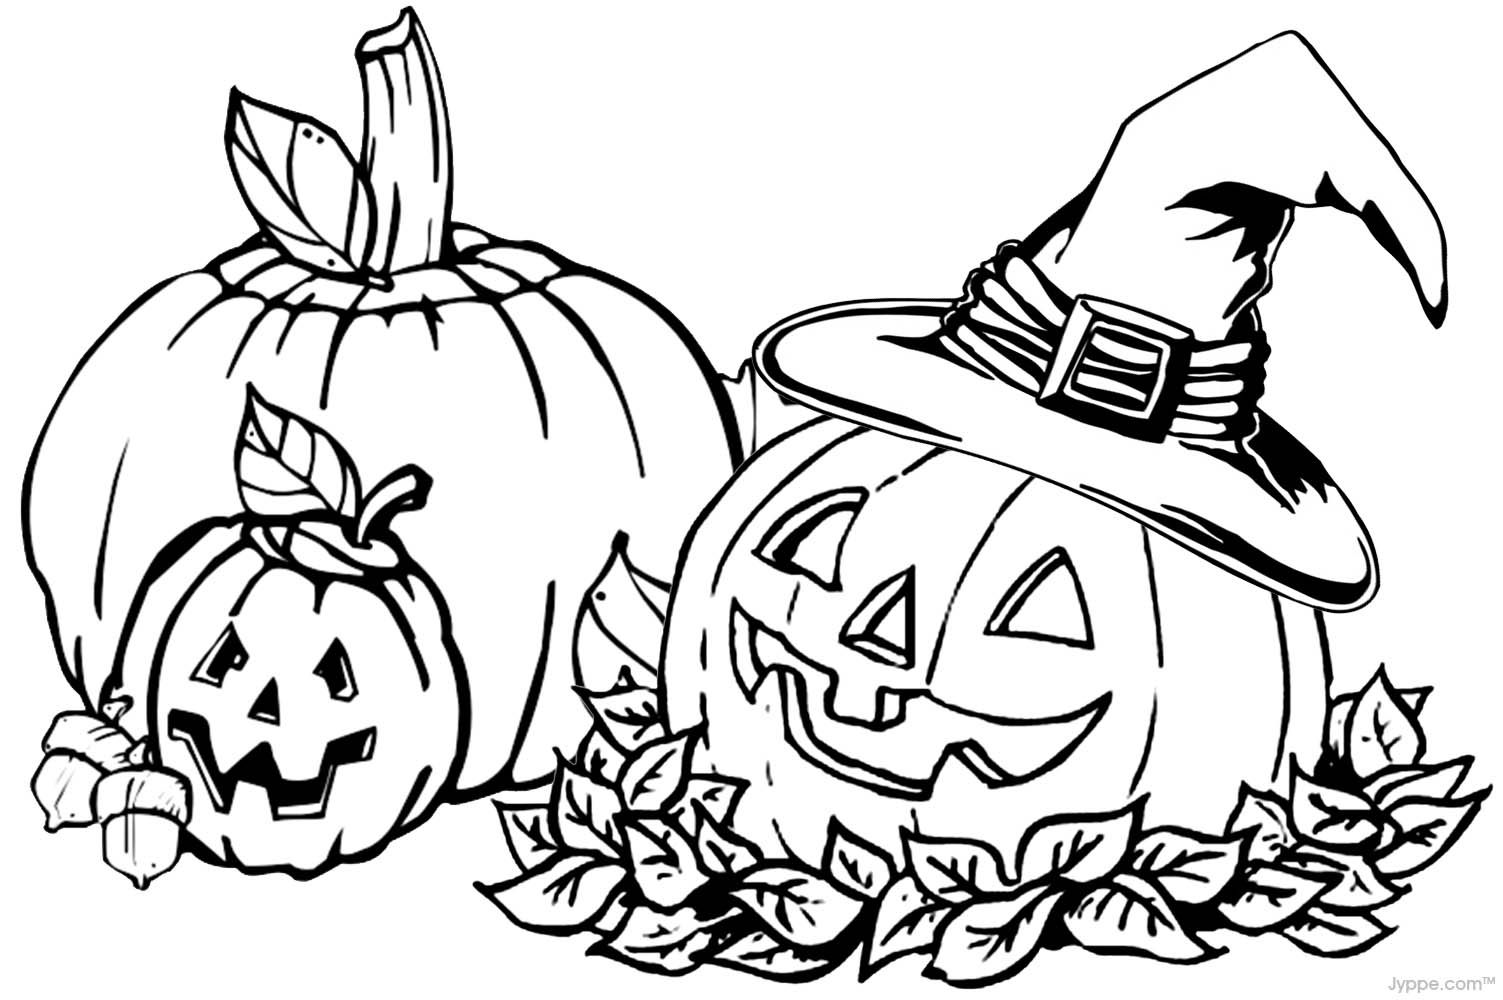 Abstract Halloween Coloring Pages : Printable halloween coloring pages for adults home